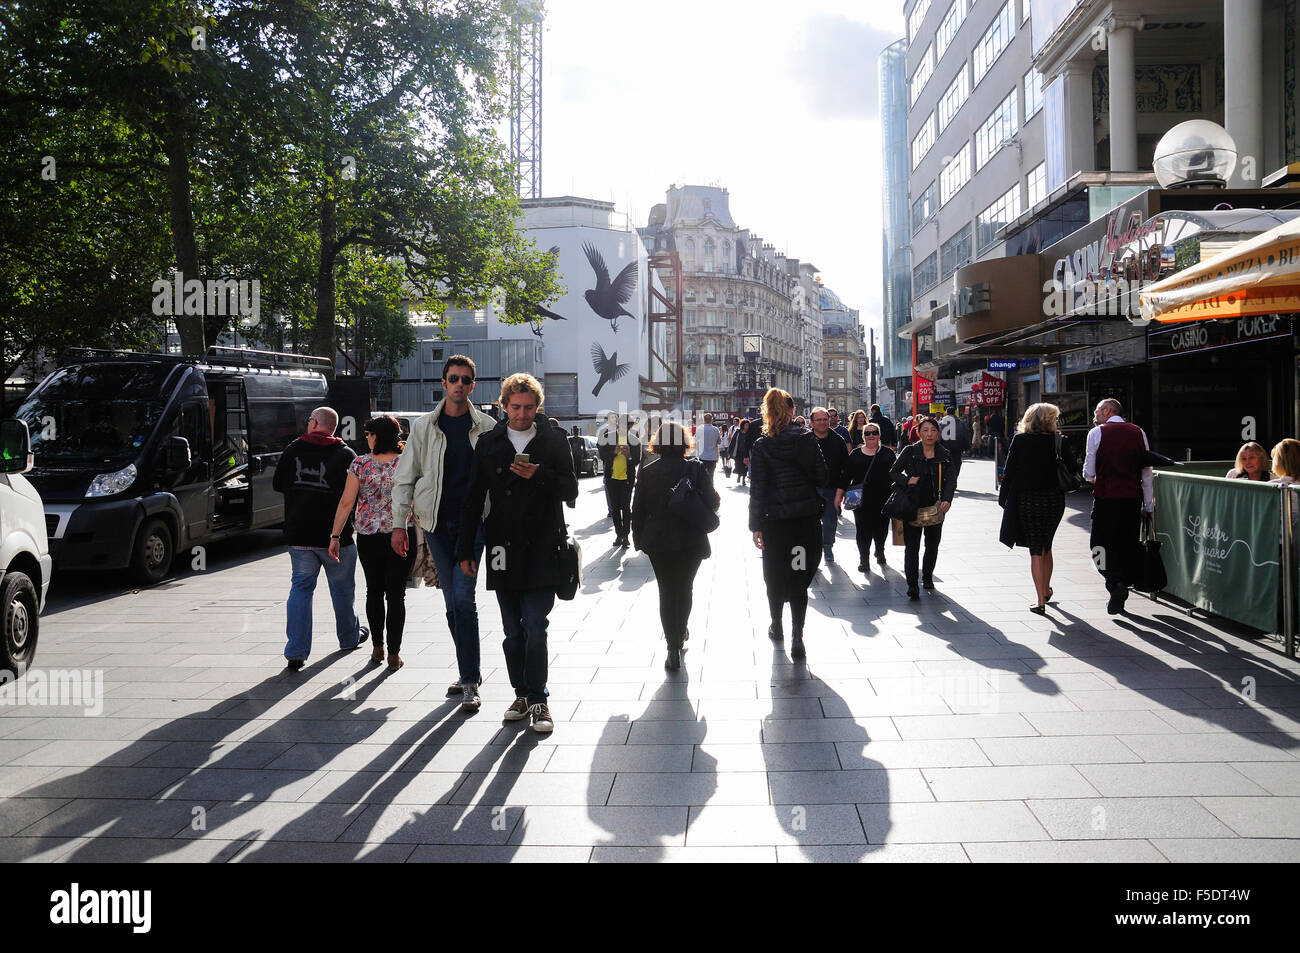 Pedestrians walking through Leicester Square, West End, City of Westminster, London, England, United Kingdom - Stock Image